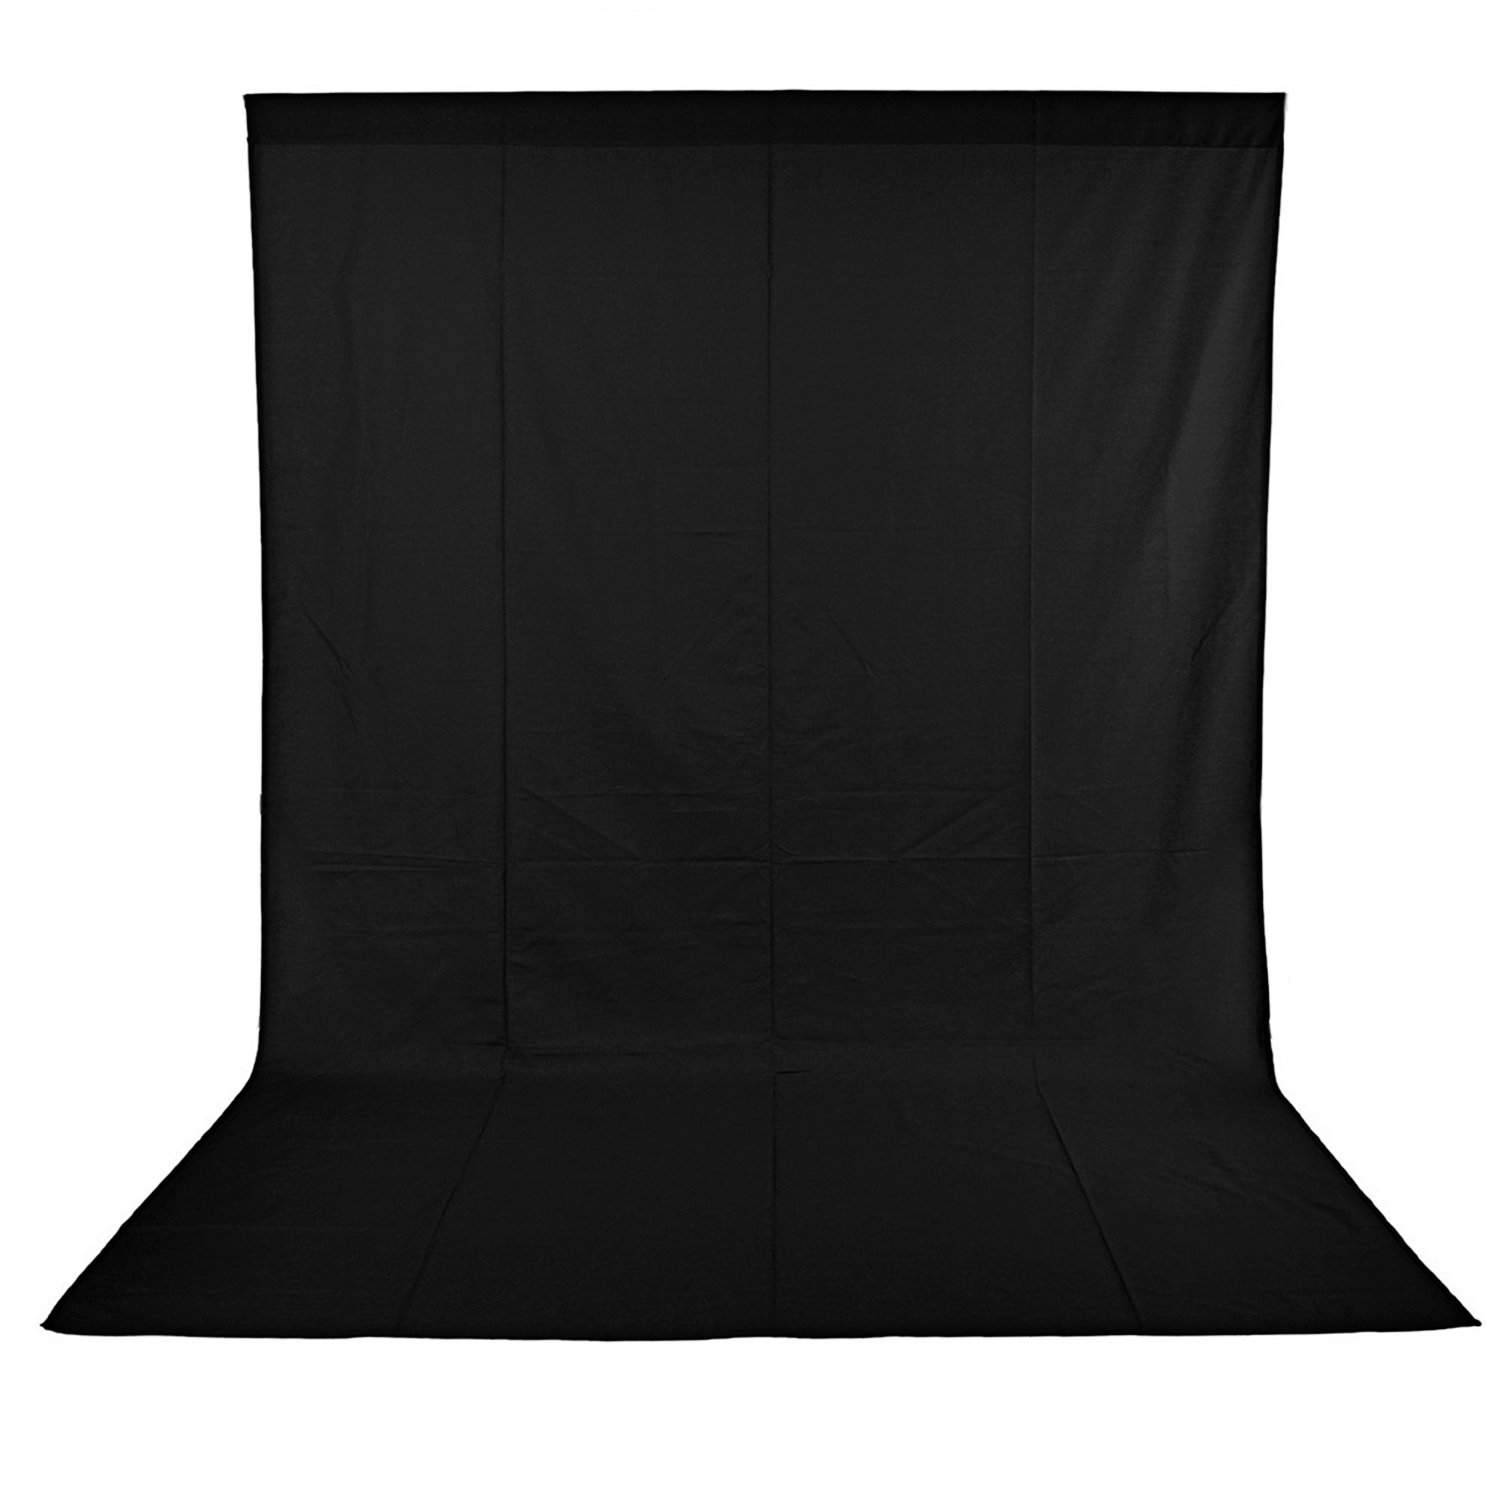 Neewer 10 x 20FT / 3 x 6M PRO Photo Studio 100% Pure Muslin Collapsible Backdrop Background for Photography,Video and Televison (Background ONLY) - BLACK